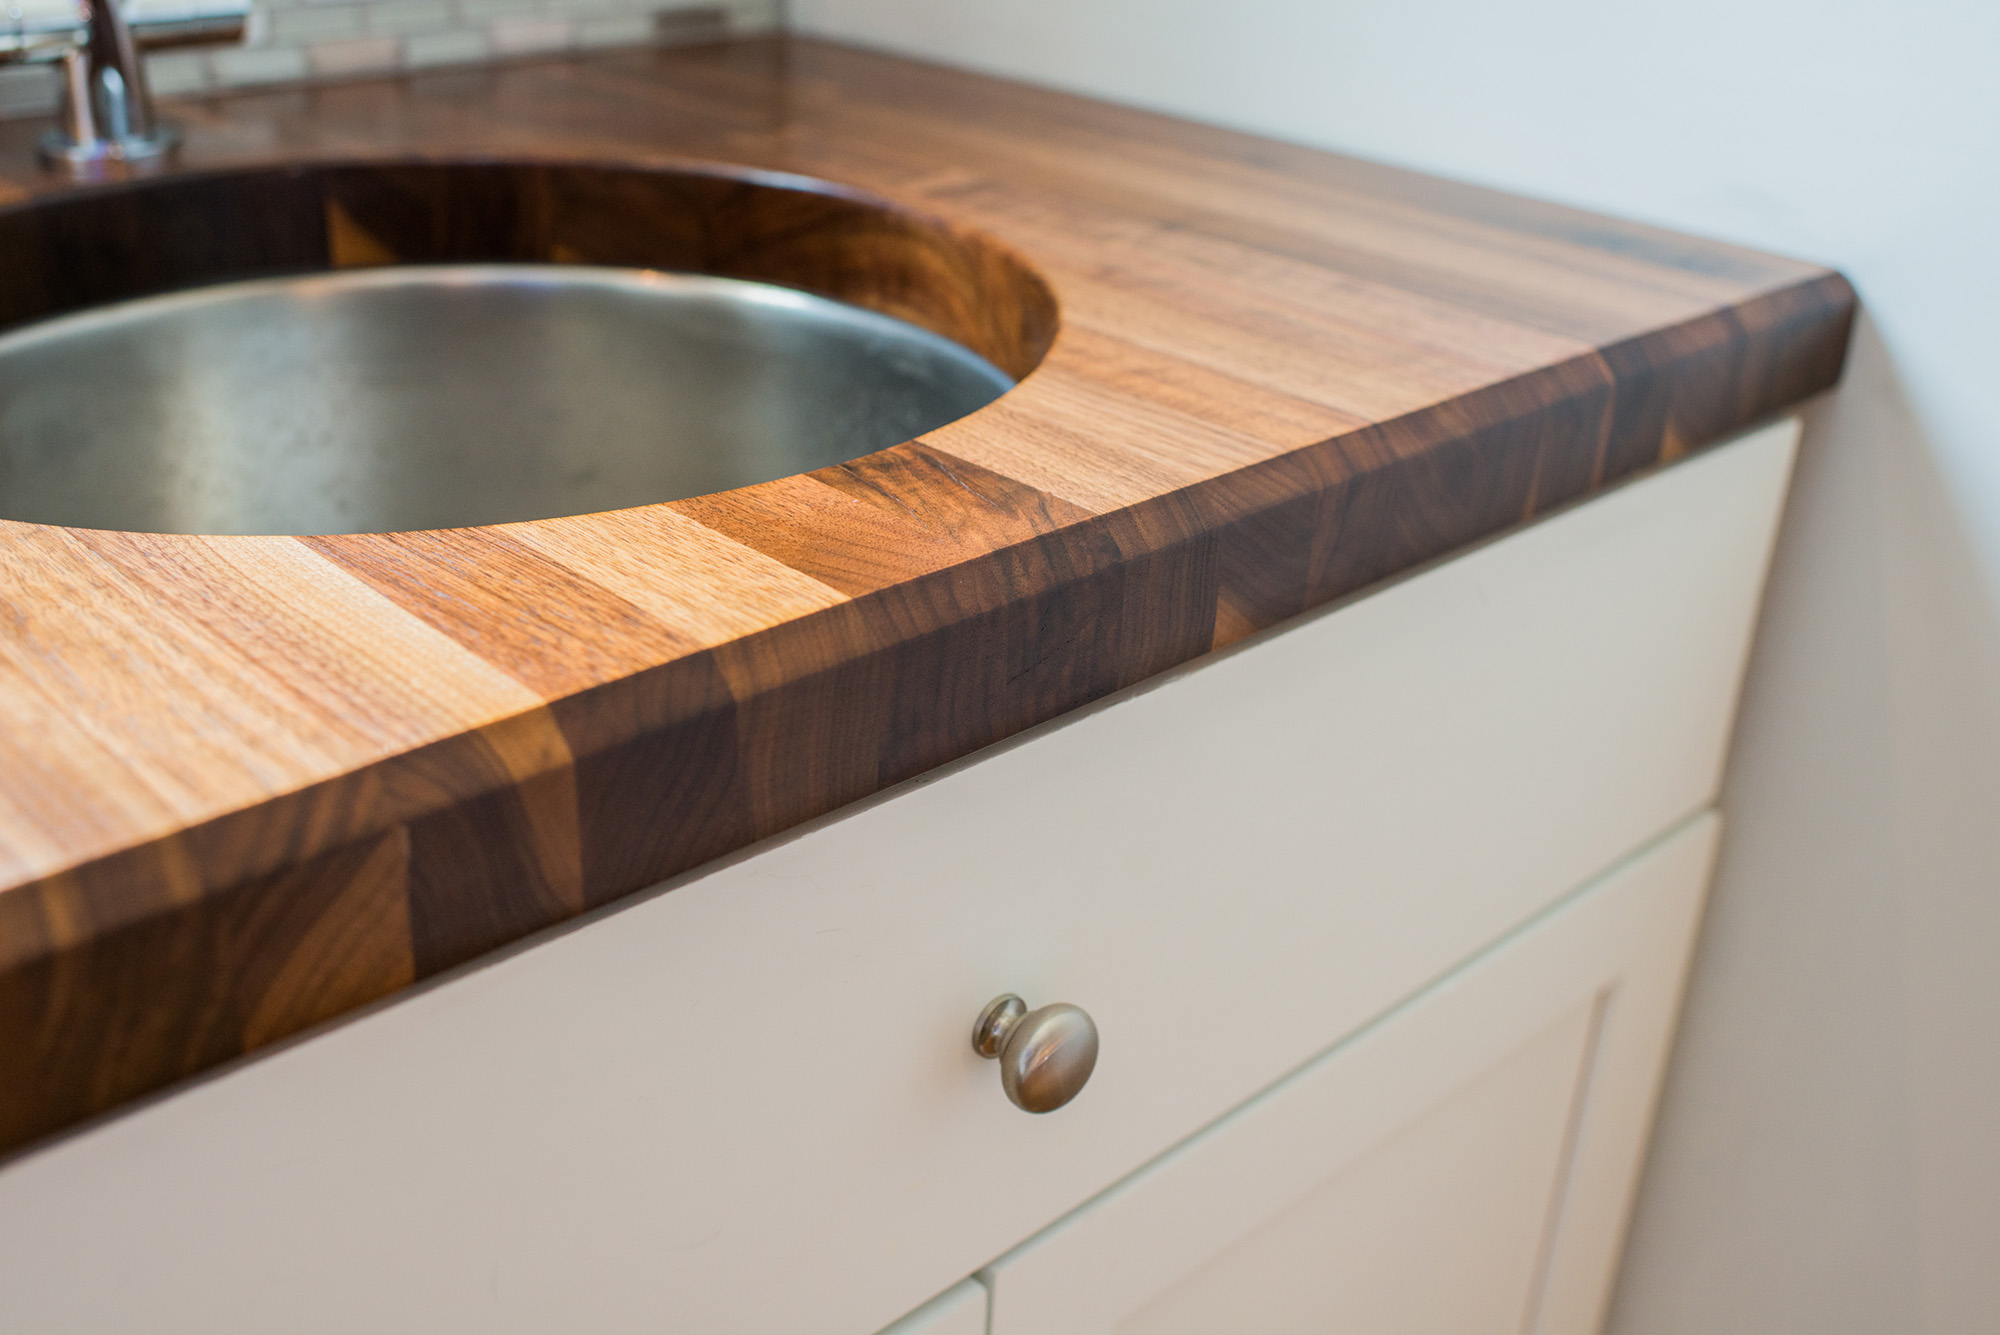 Heirloom Wood Countertops Looking For Handcrafted Wood Countertops In Dc